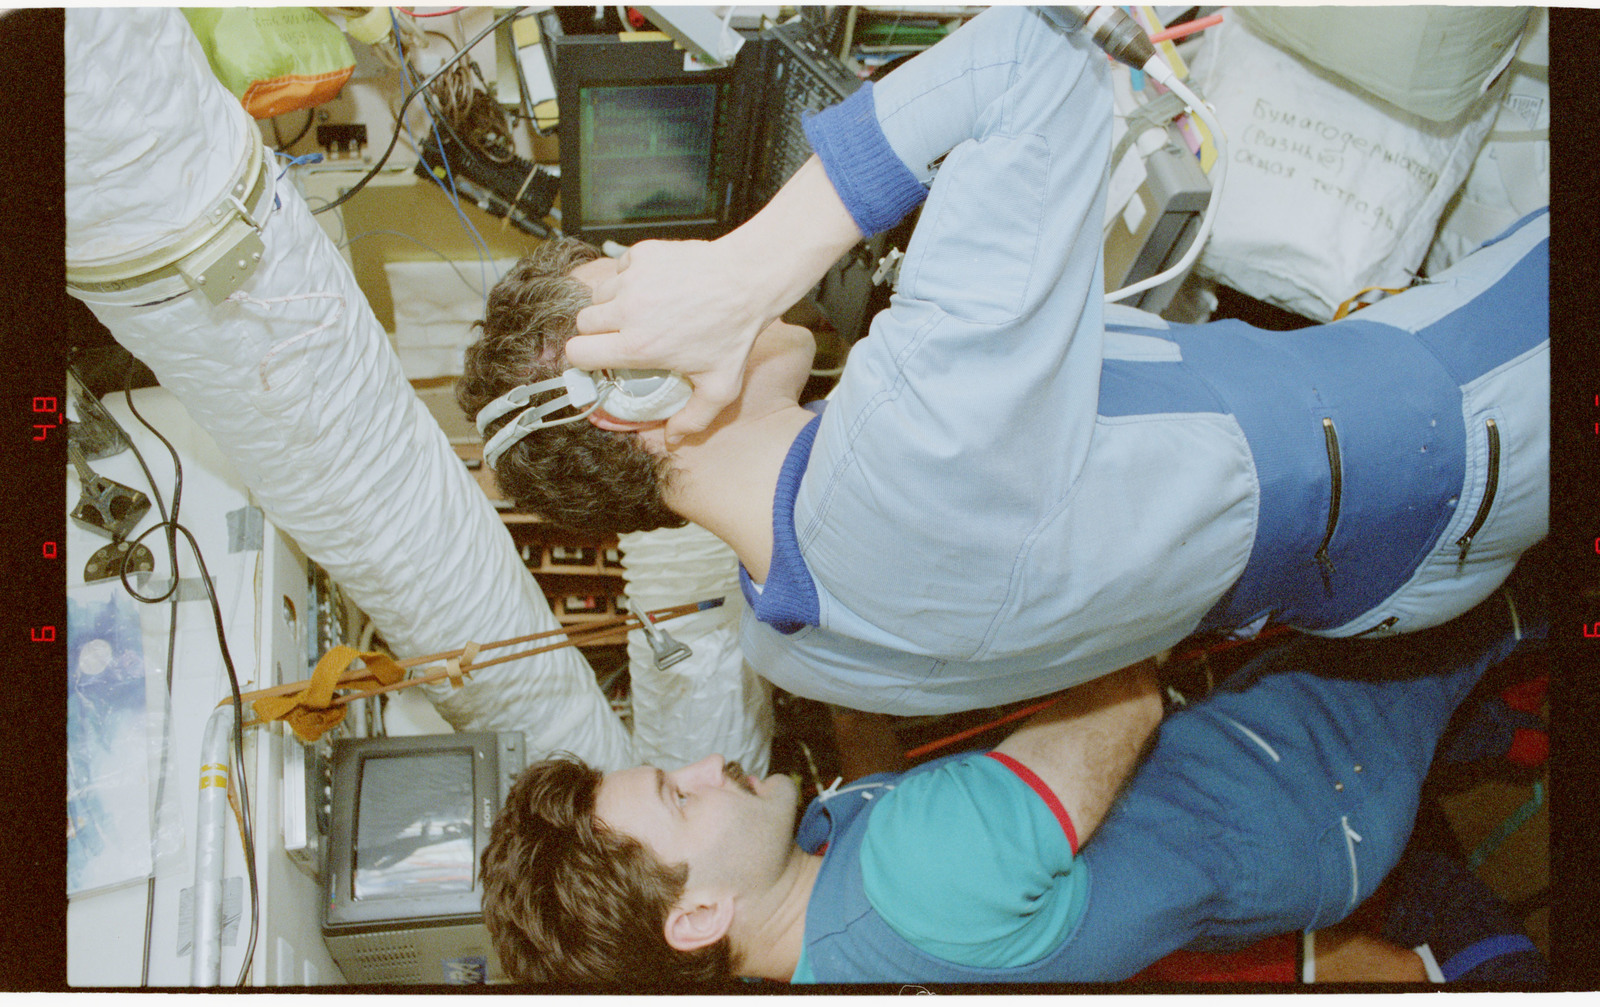 STS079-336-033 - STS-079 - STS-79 and Mir 22 crew activities in Mir space station